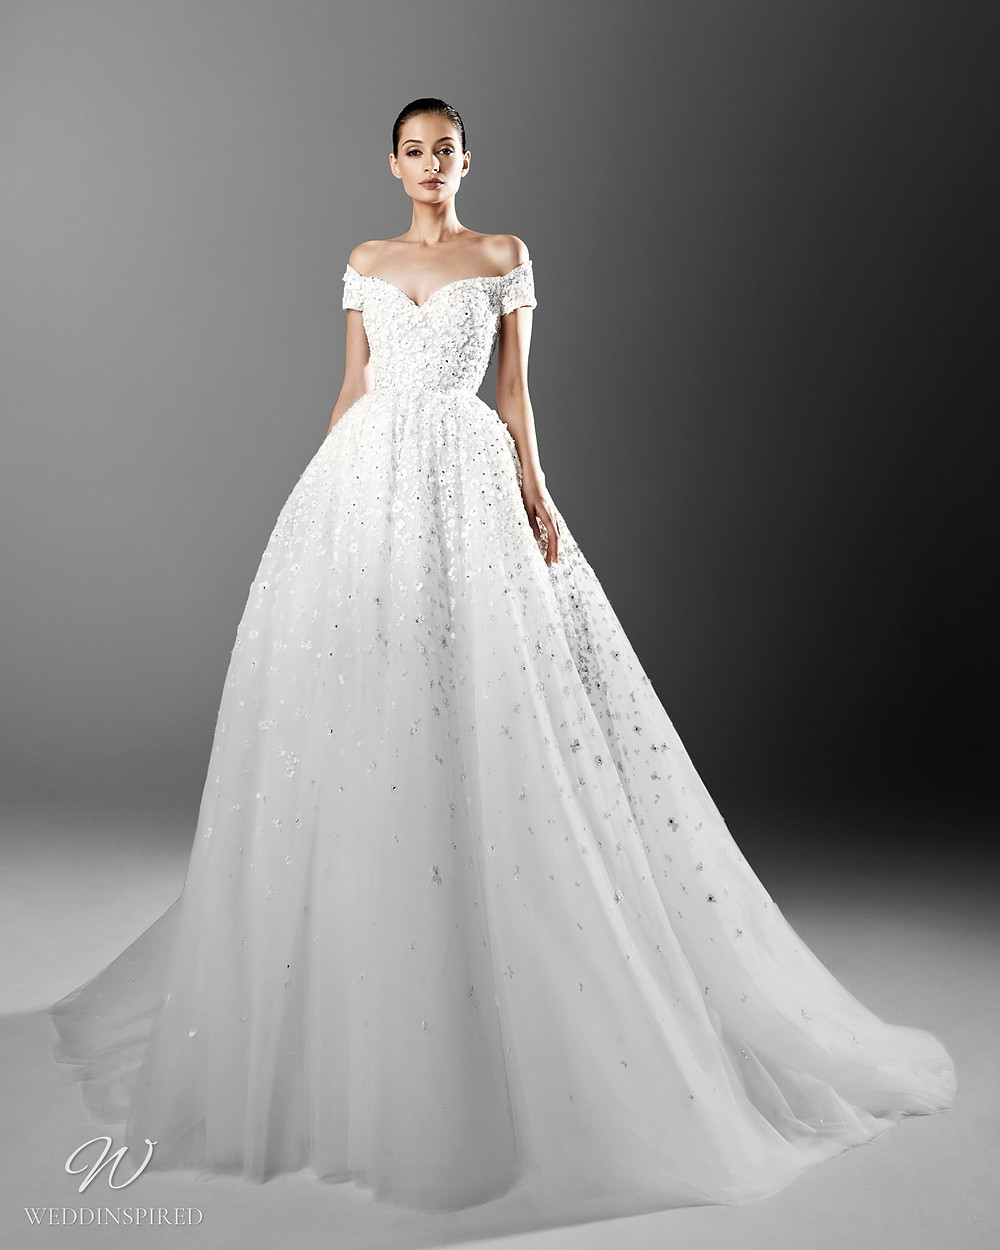 A Zuhair Murad ball gown off the shoulder princess wedding dress with crystals